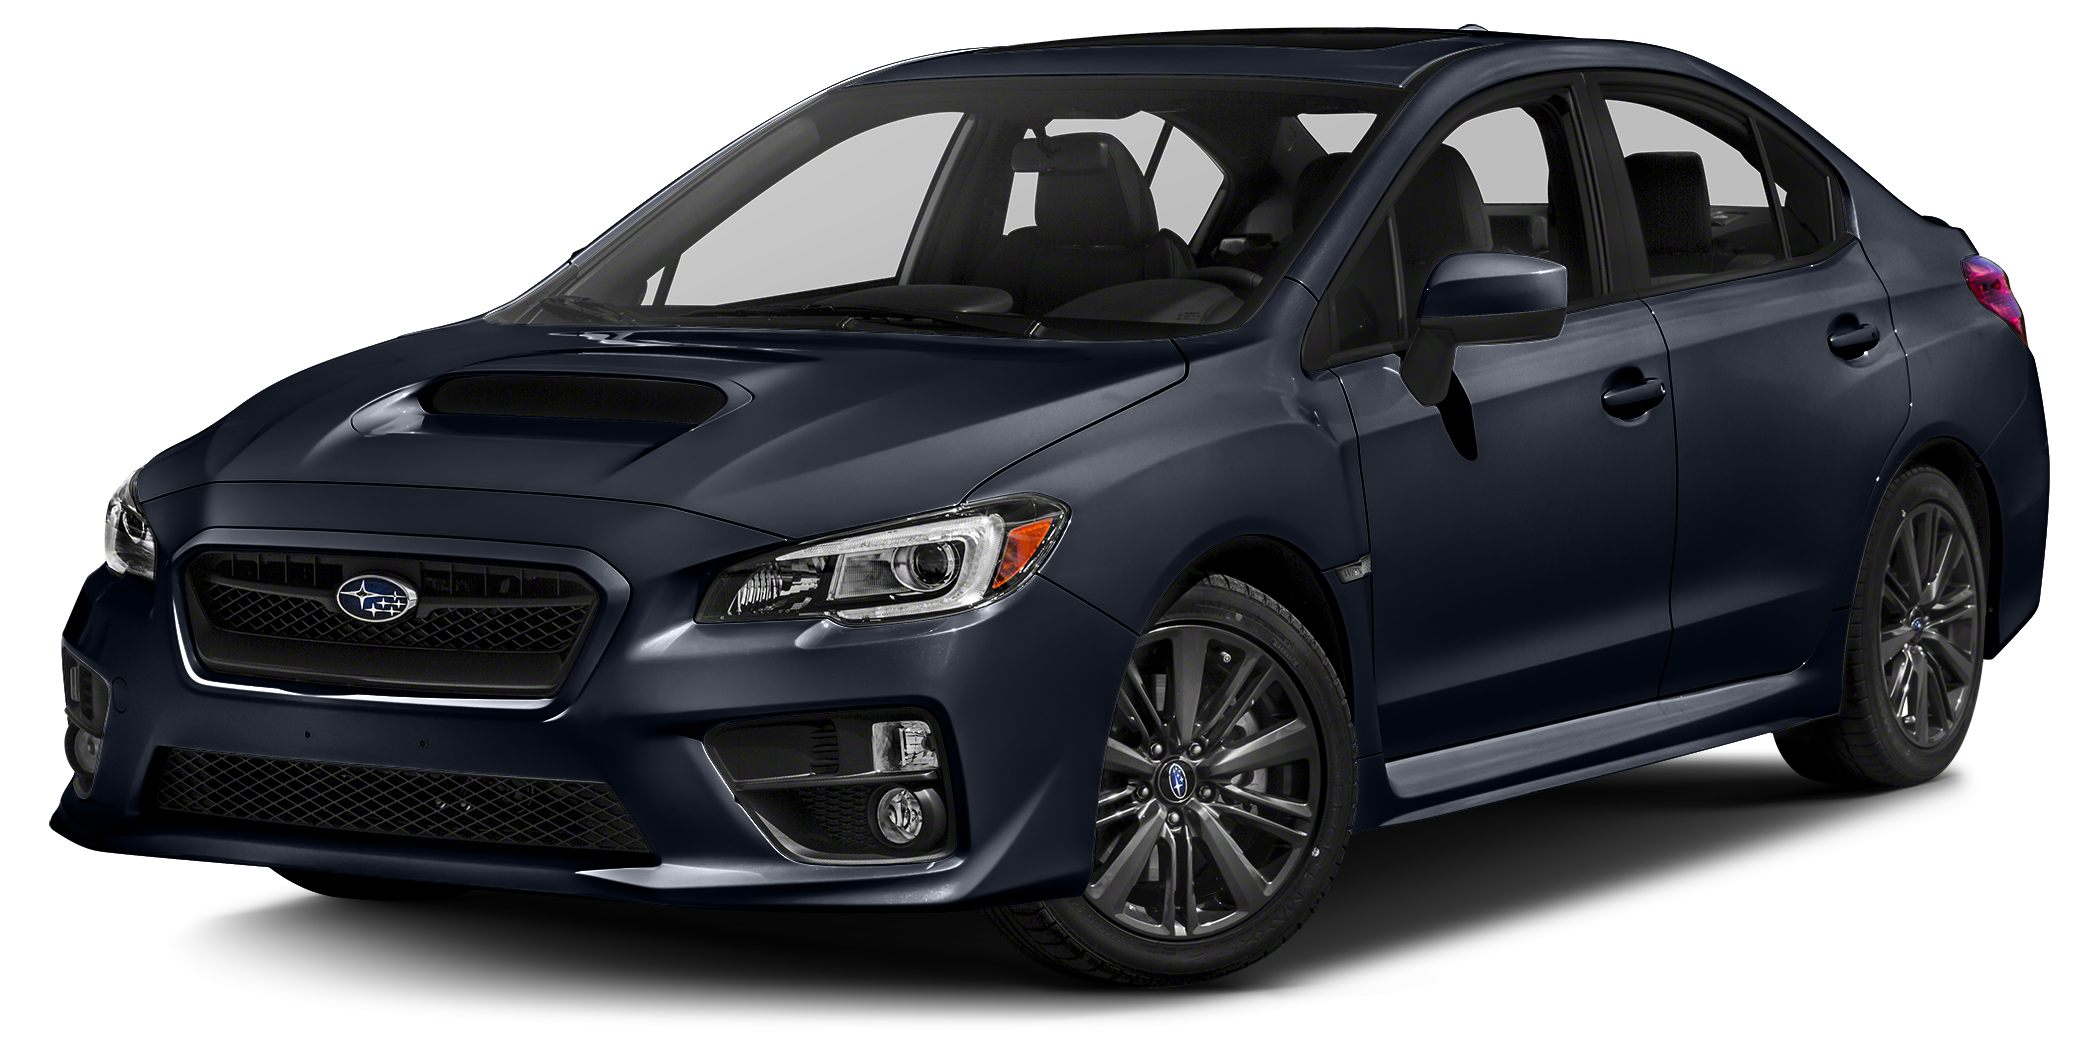 2015 Subaru WRX Base BUY WITH CONFIDENCE CARFAX 1-Owner WRX and CARFAX Buyback Guarantee qualifie